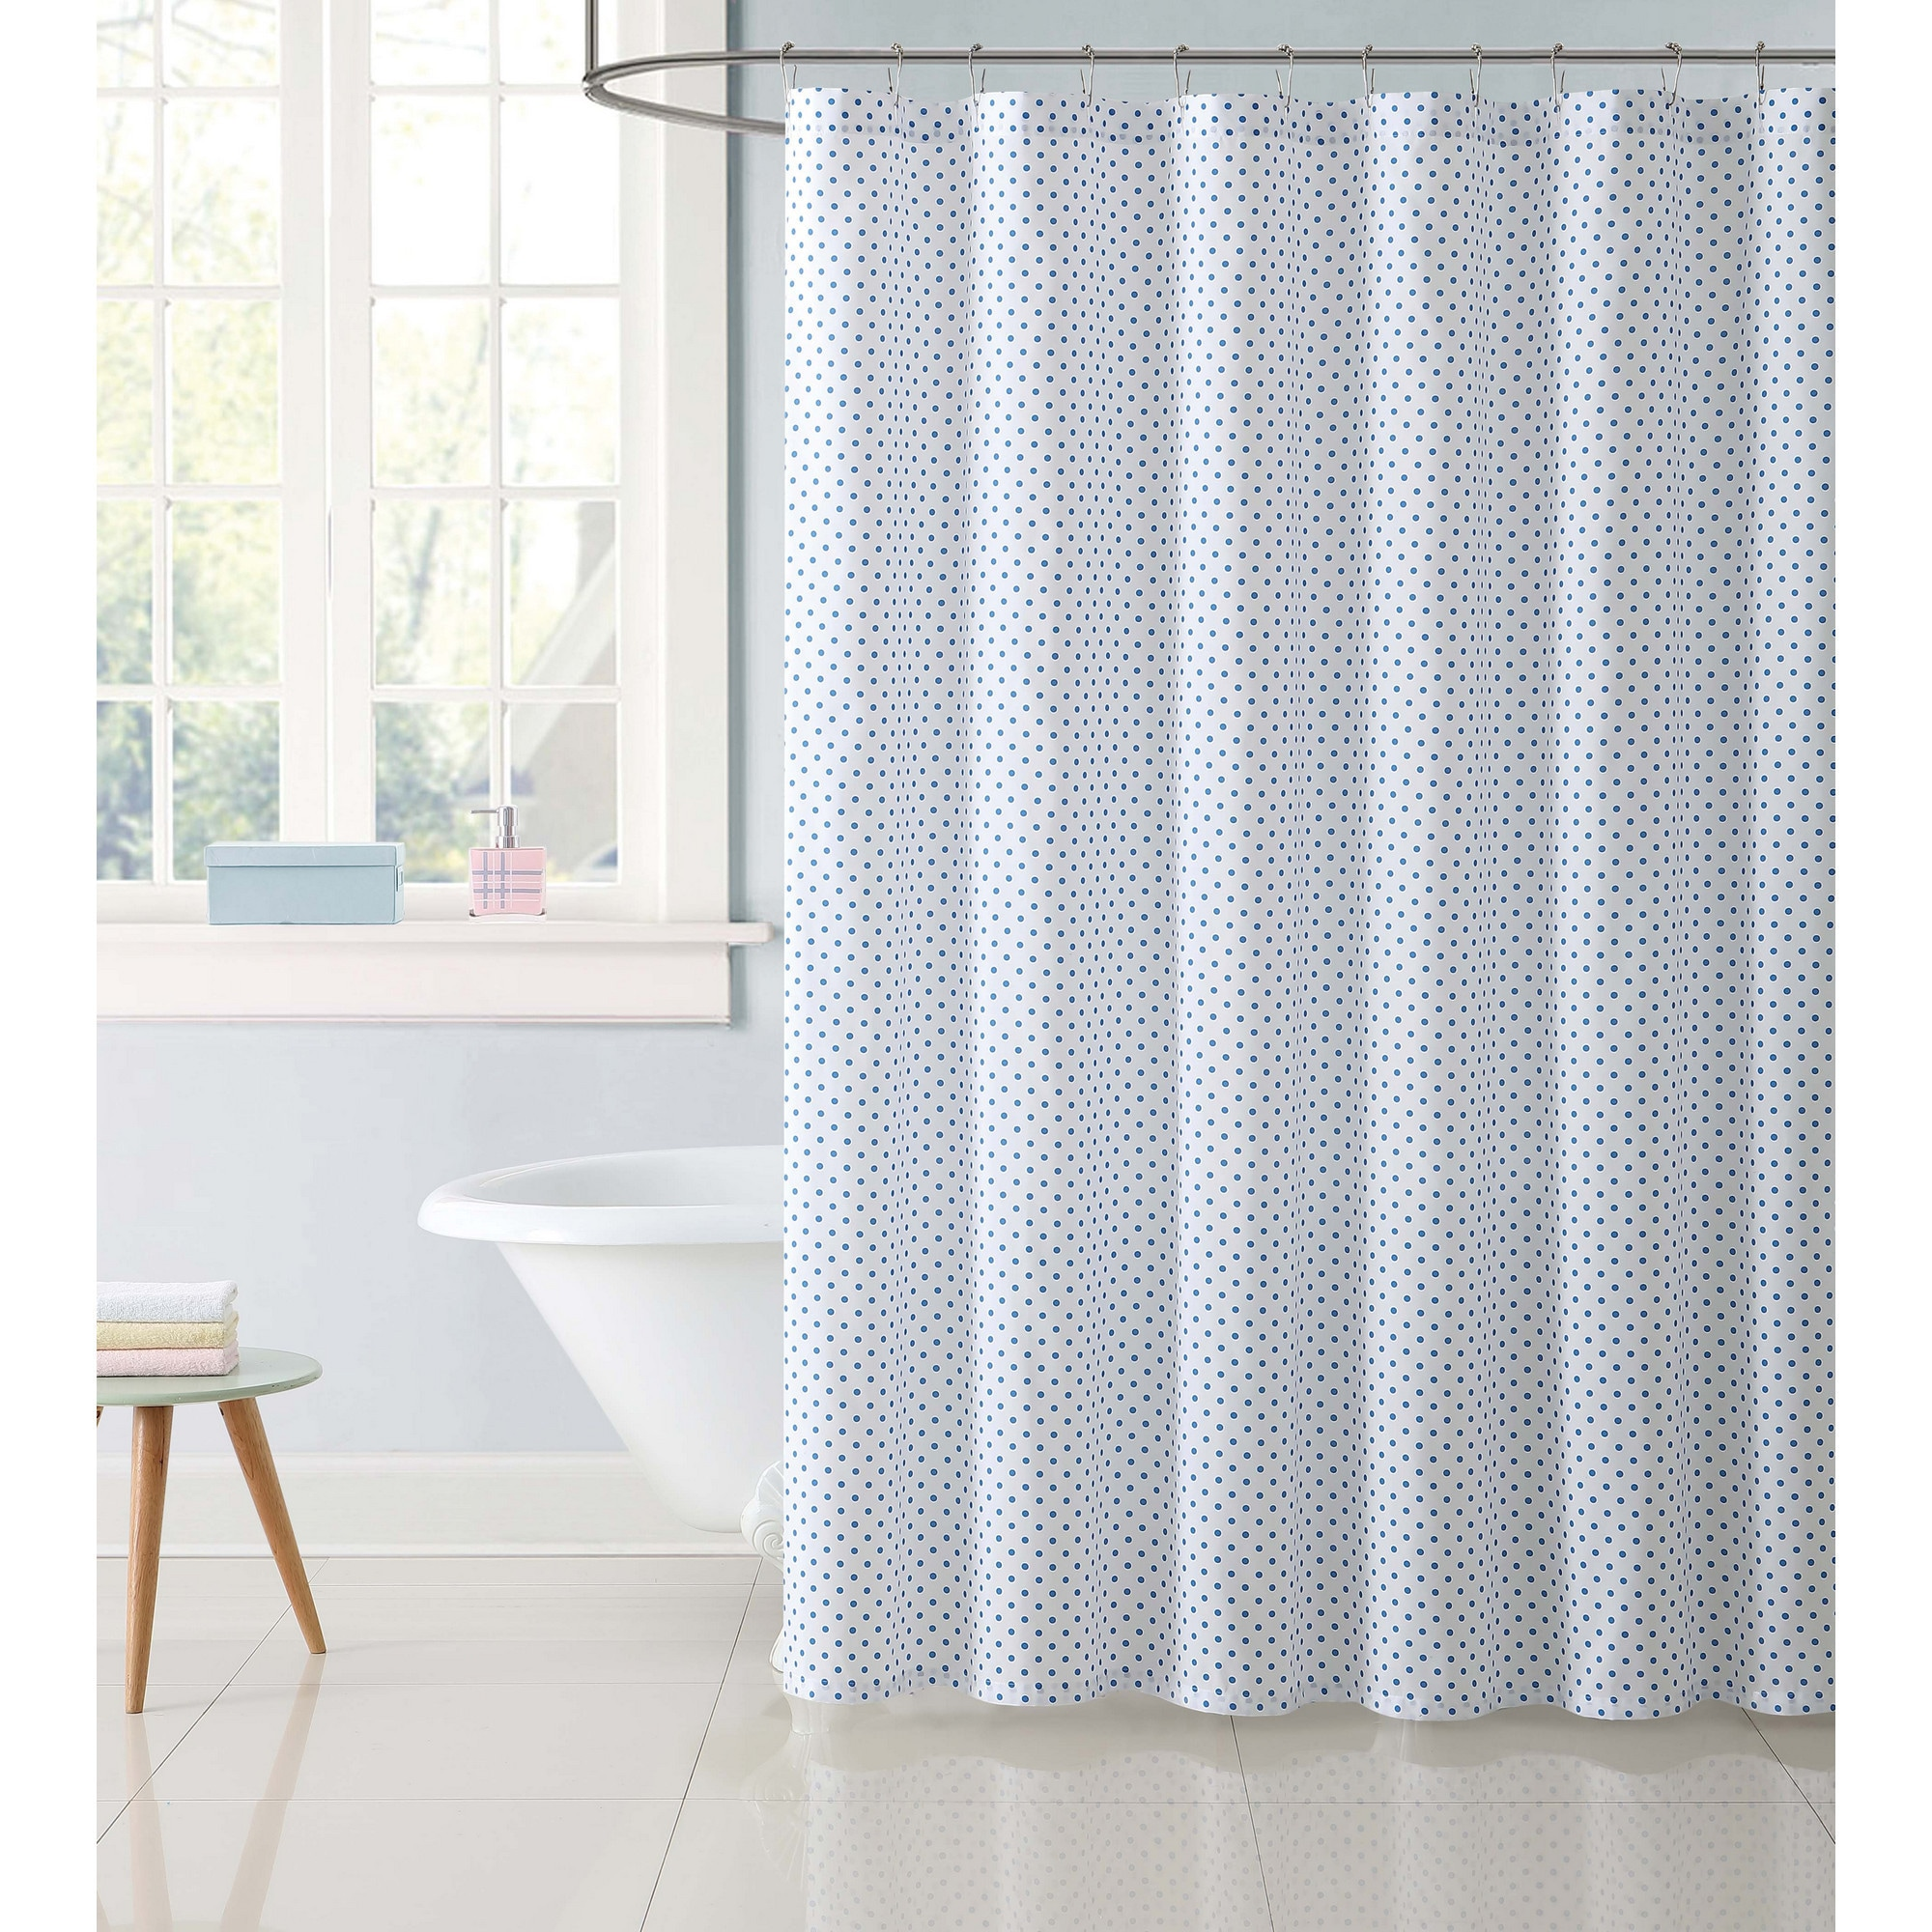 Shop Truly Soft Everyday Printed Dot Shower Curtain - Free Shipping ...